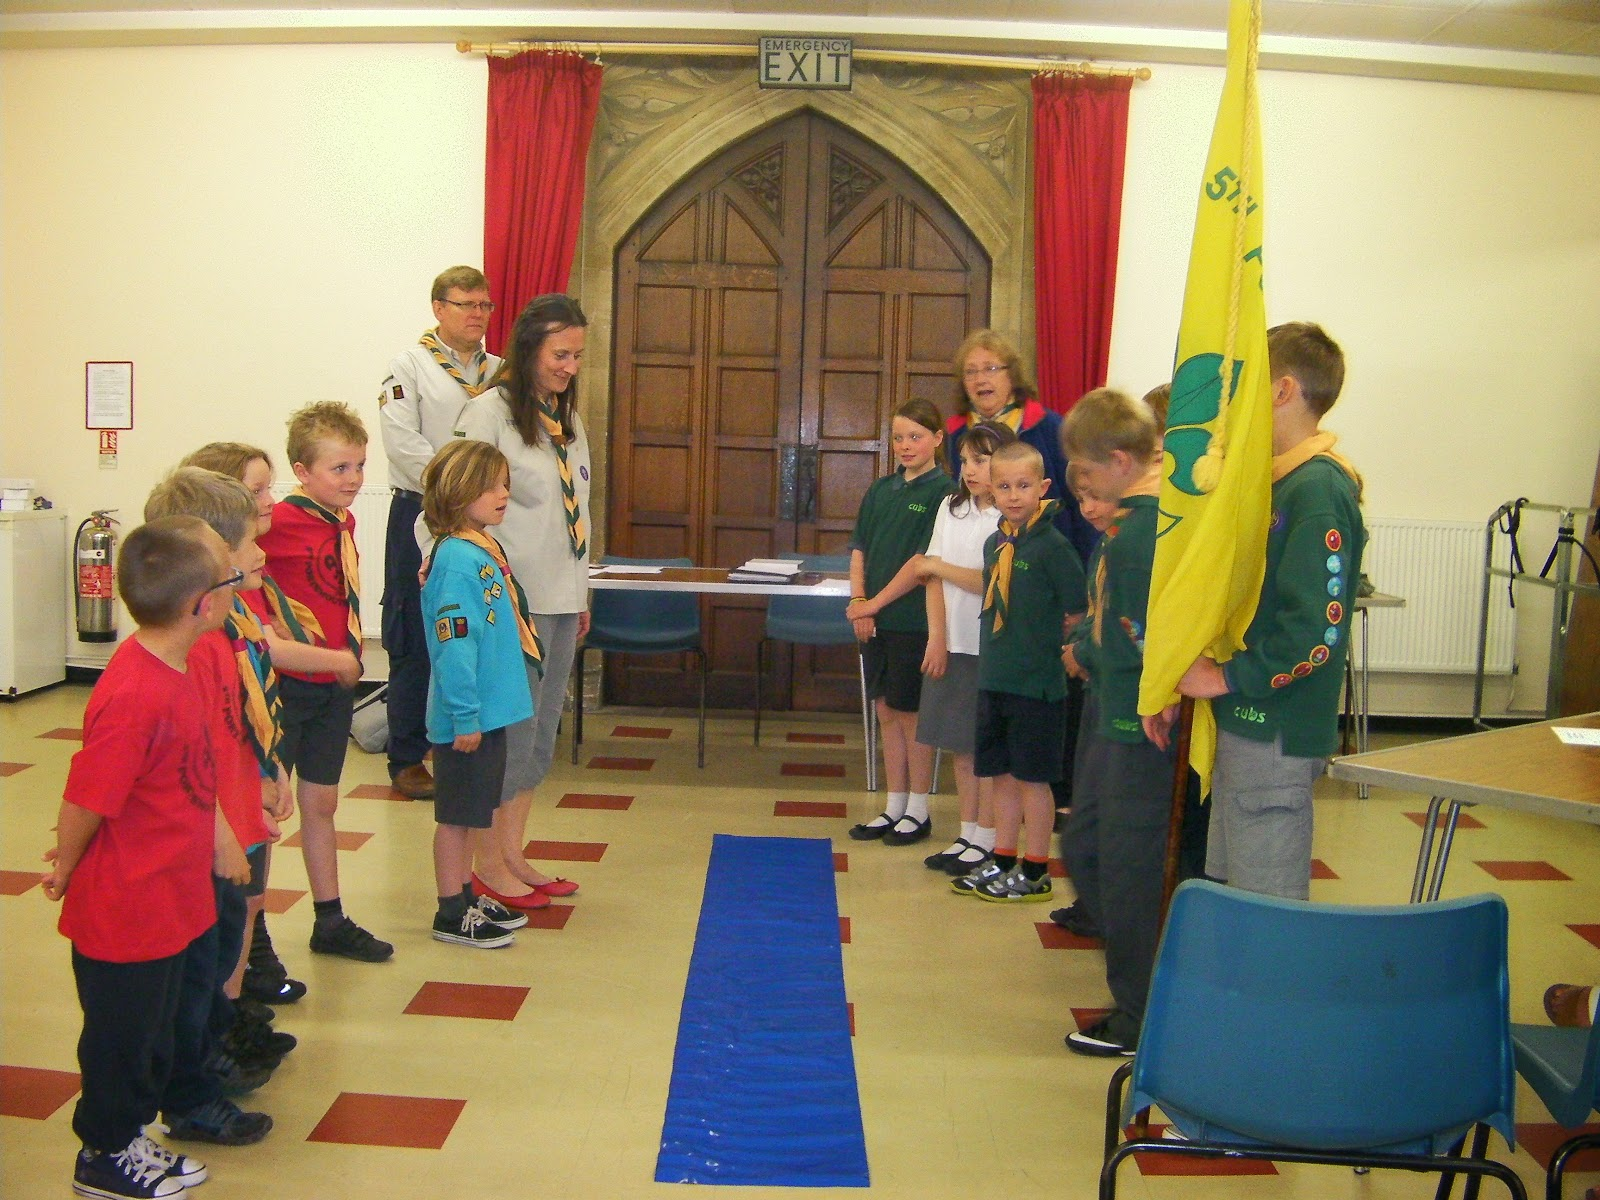 milton 5th portsmouth scout group meeting in st james church hall